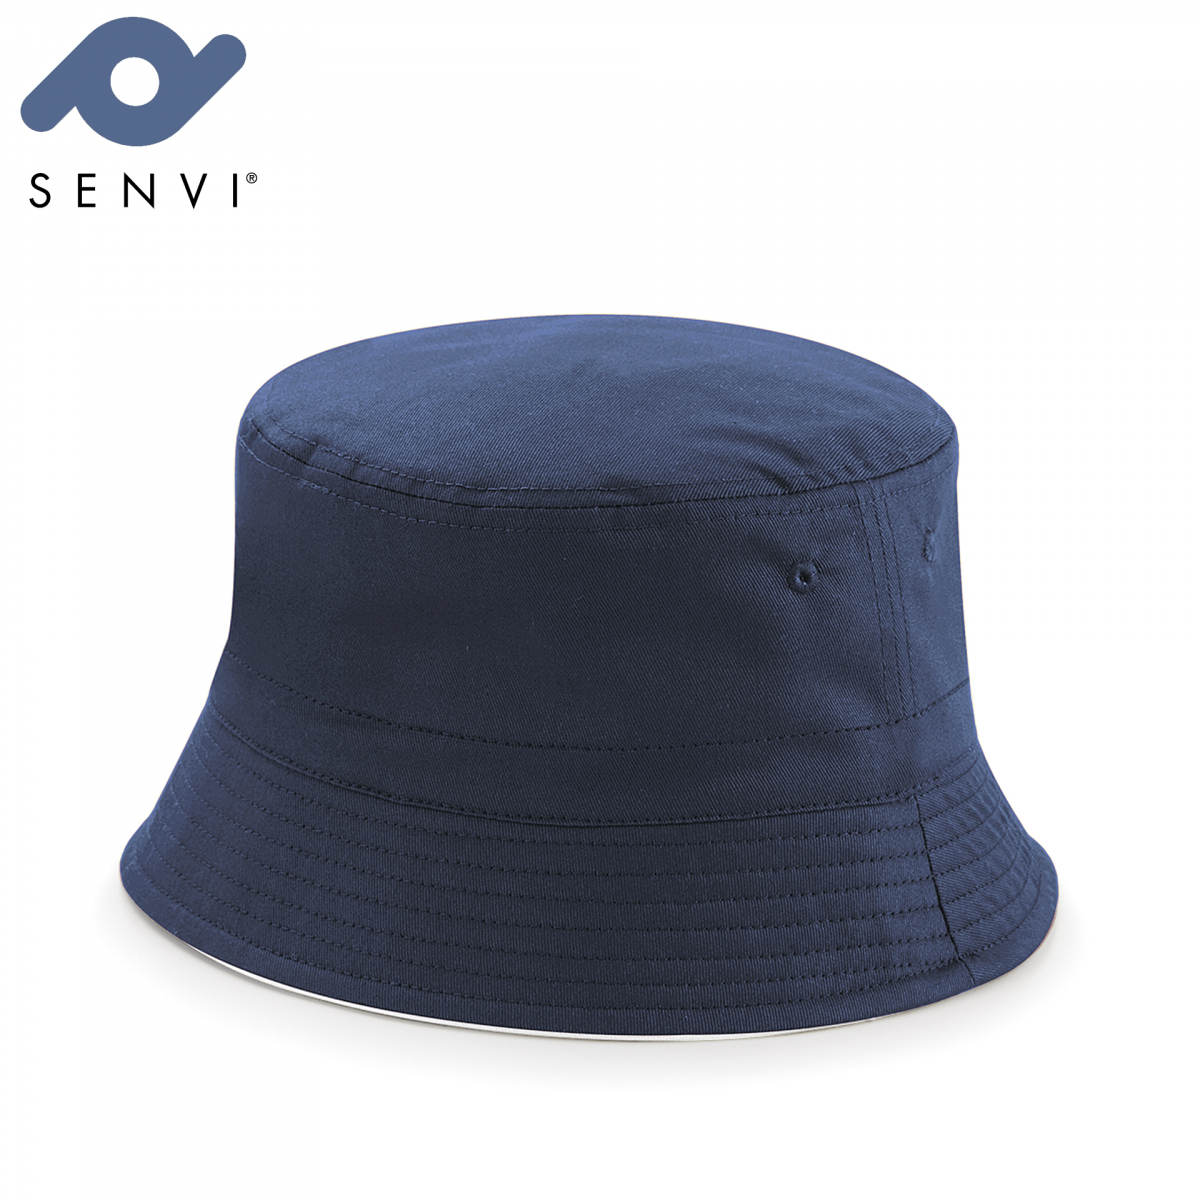 Senvi Reversible Bucket Hat Maat S/M Blauw Wit